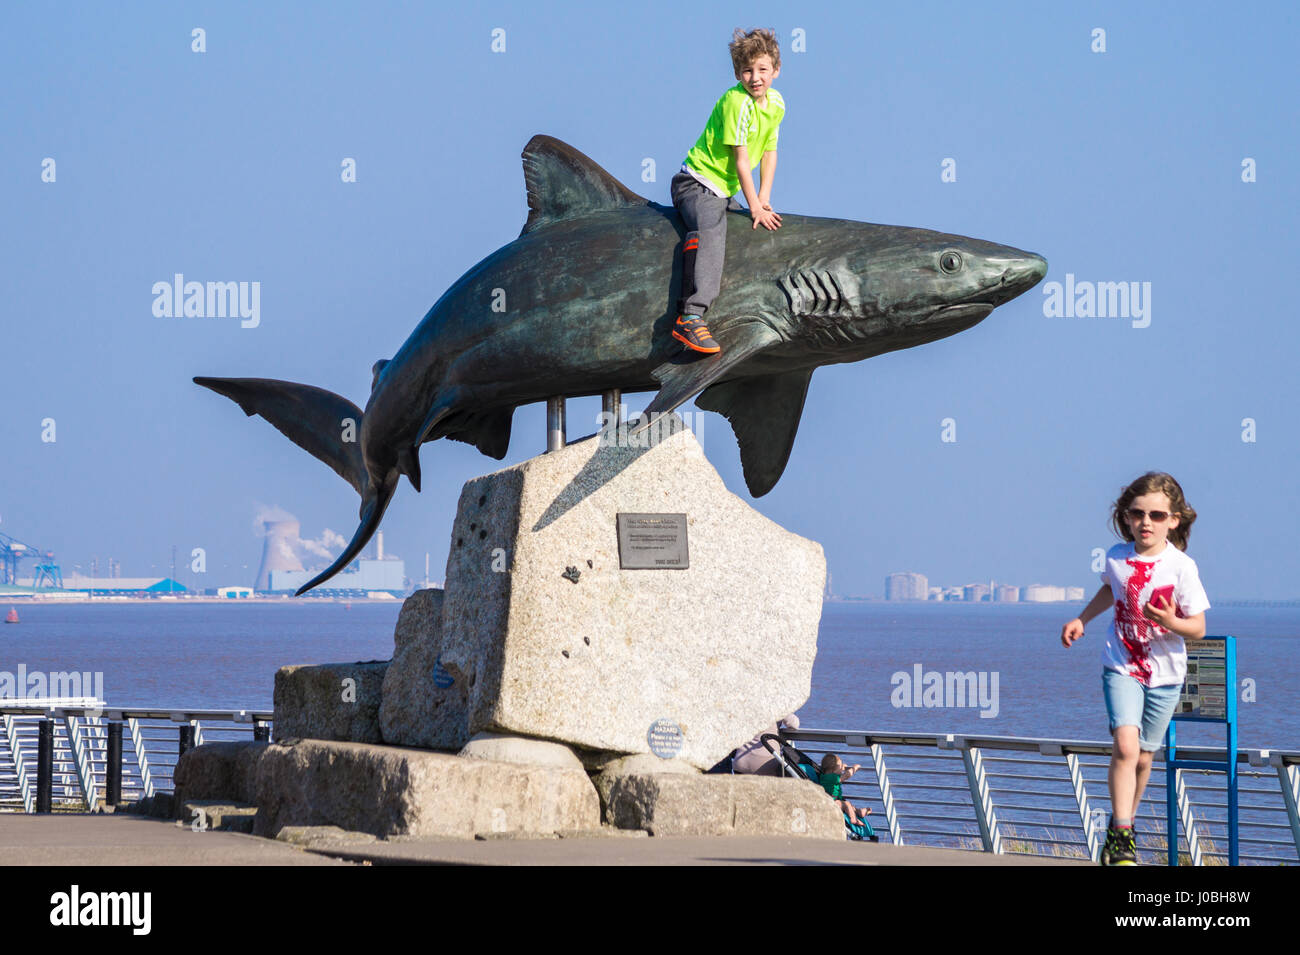 small-boy-sitting-on-shark-bronze-sculpture-of-grey-reef-shark-by-J0BH8W.jpg